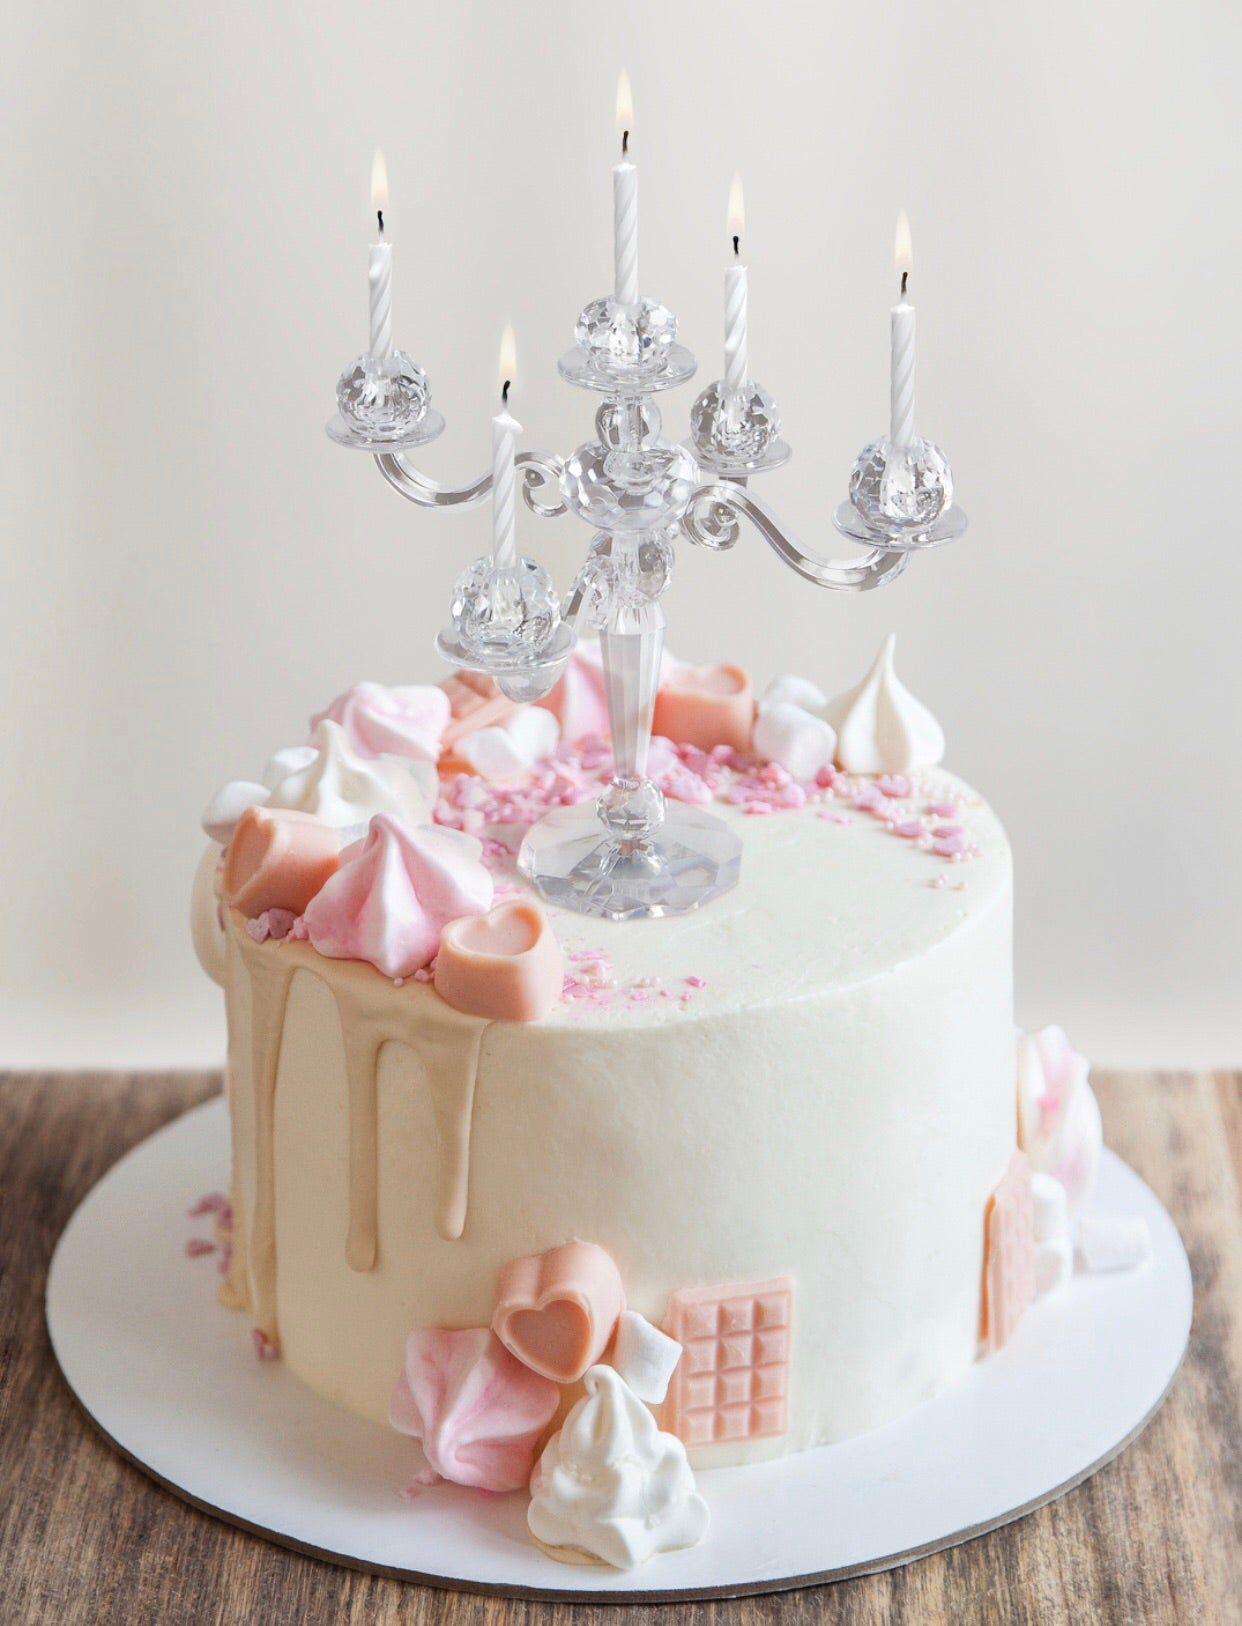 the cake candelabra is the perfect topping for your birthday cake